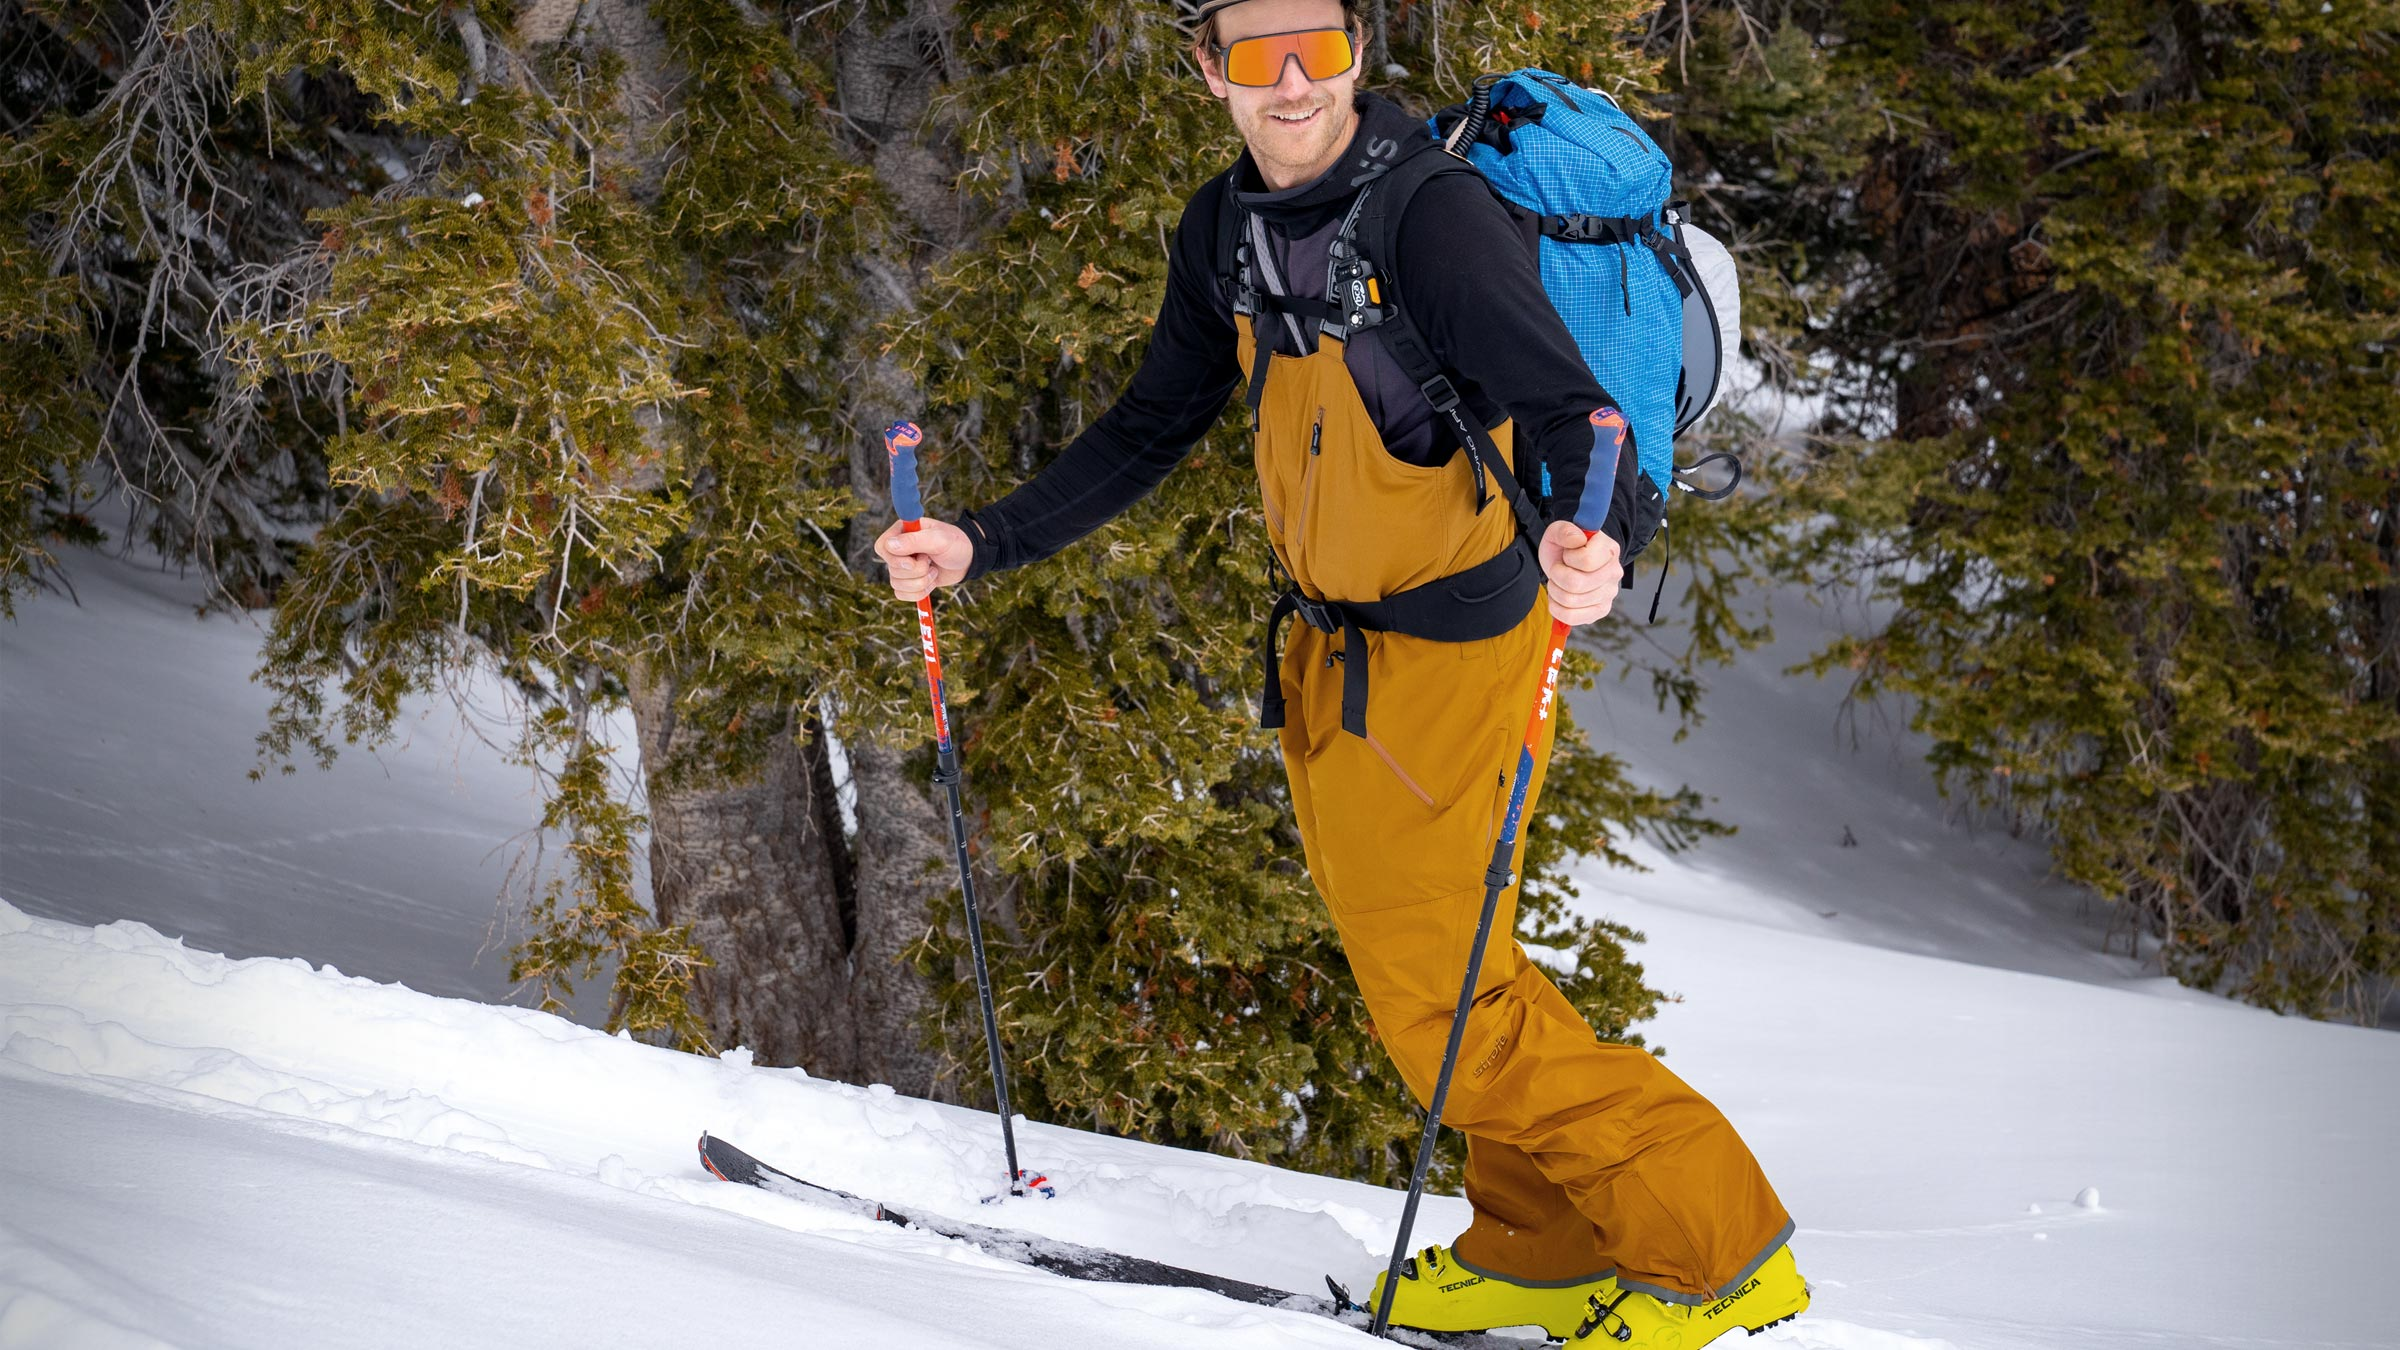 Skinning through evergreens in the nomad bib ski pant